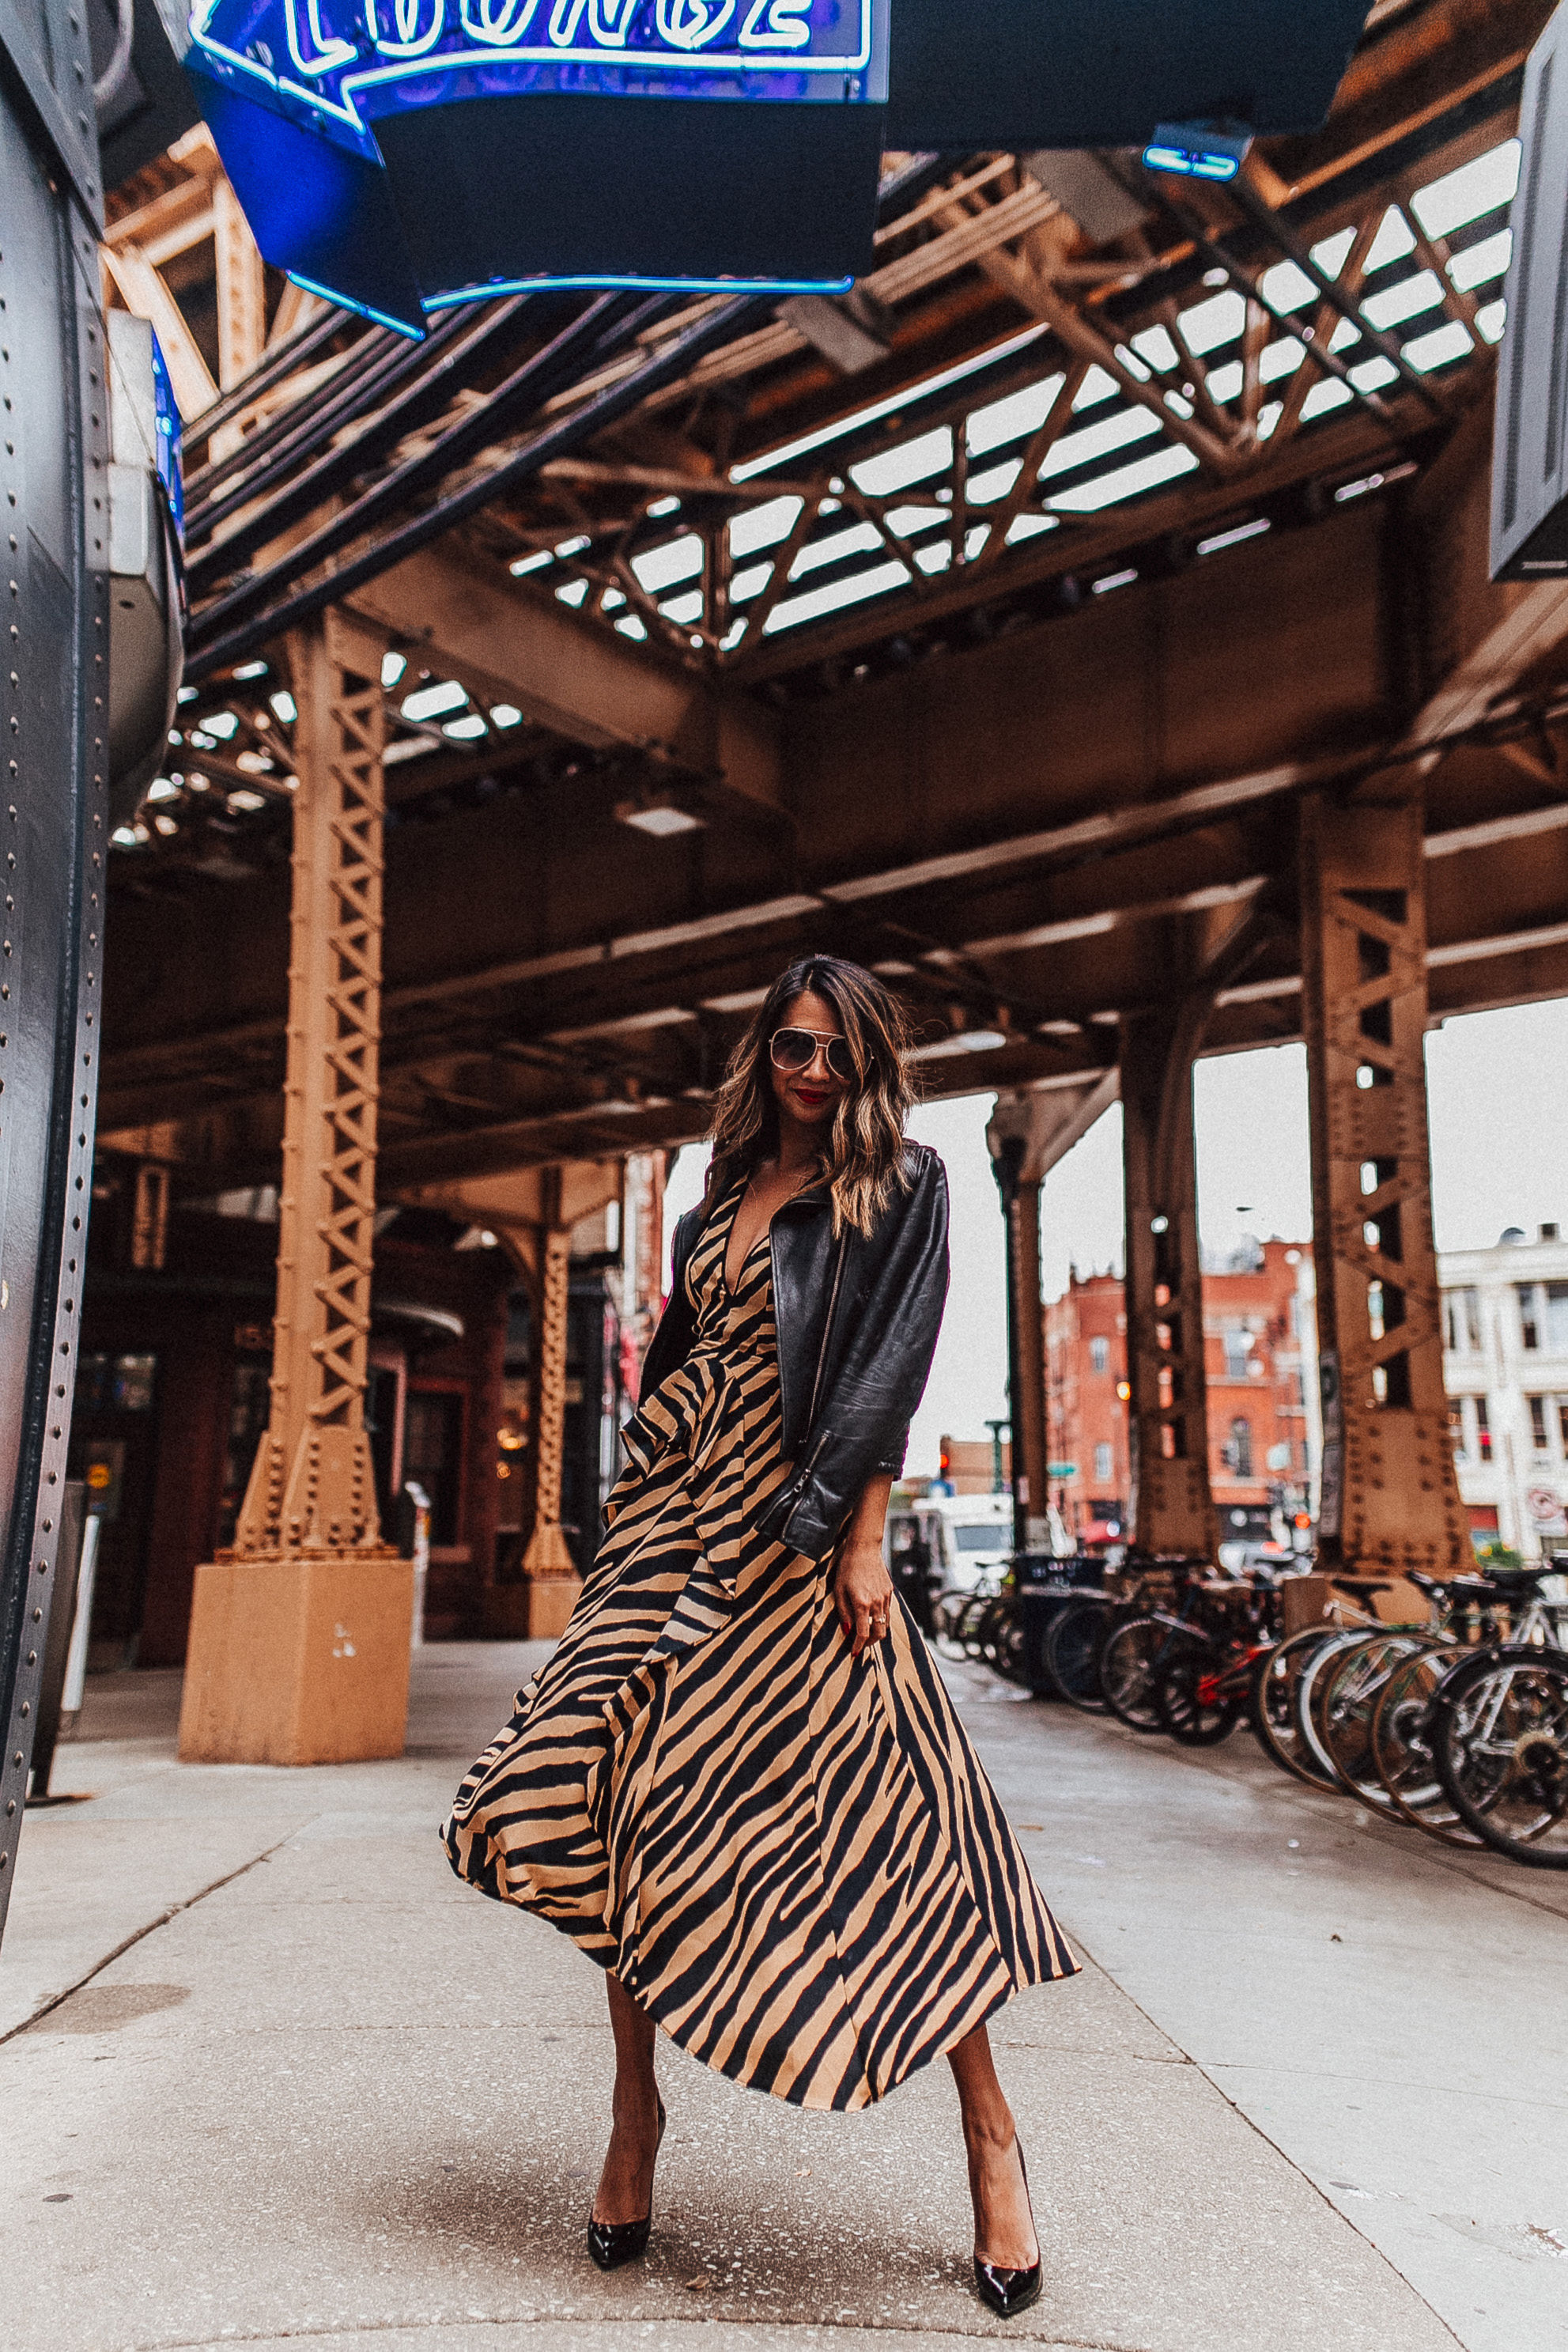 nordstrom topshop dress, leopard print dress, jennifer worman, chicago fall style,